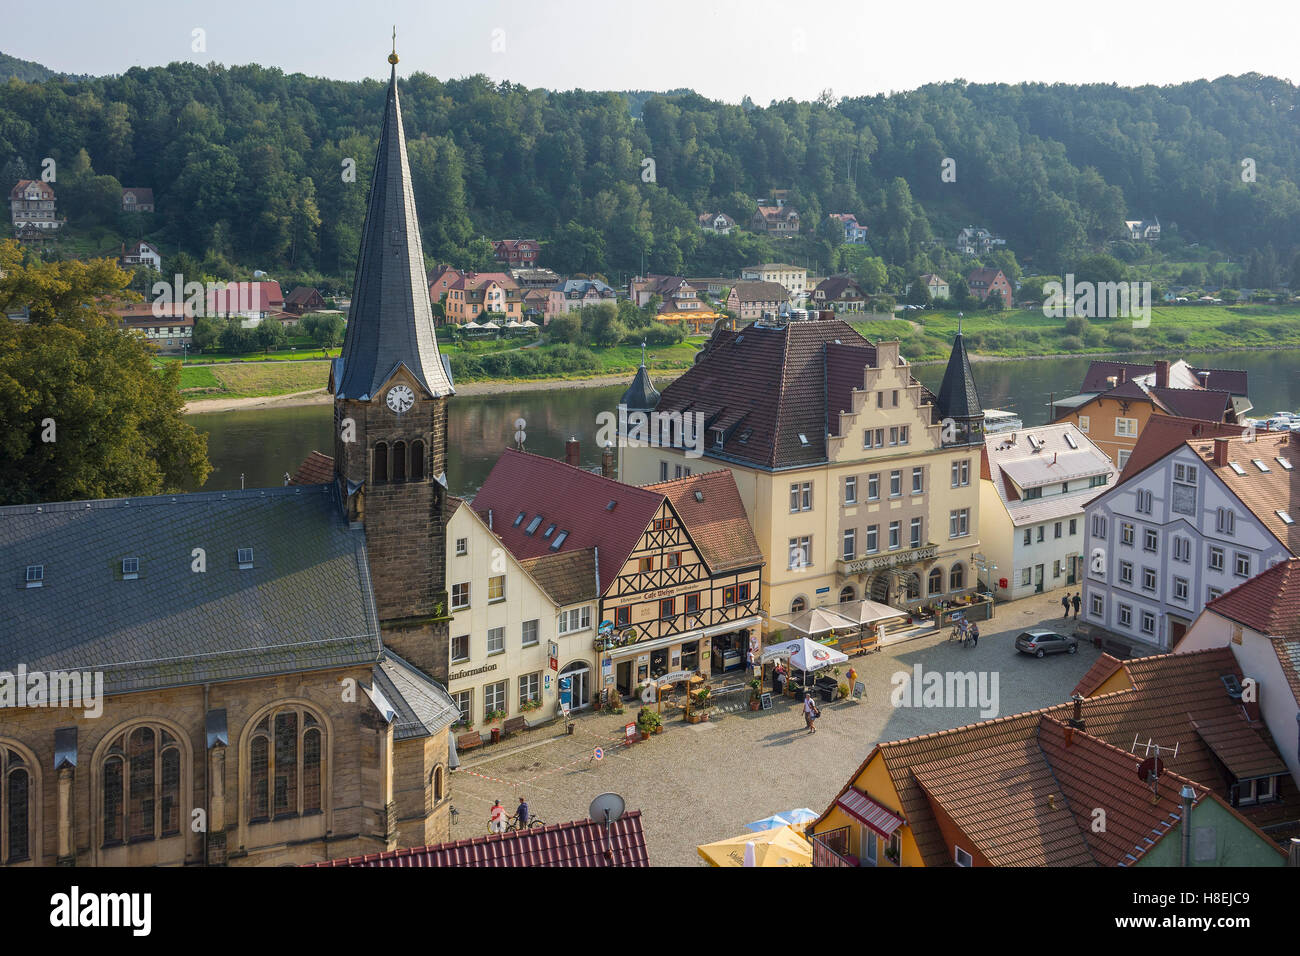 Stadt Wehlen and River Elbe, Saxony, Germany, Europe - Stock Image